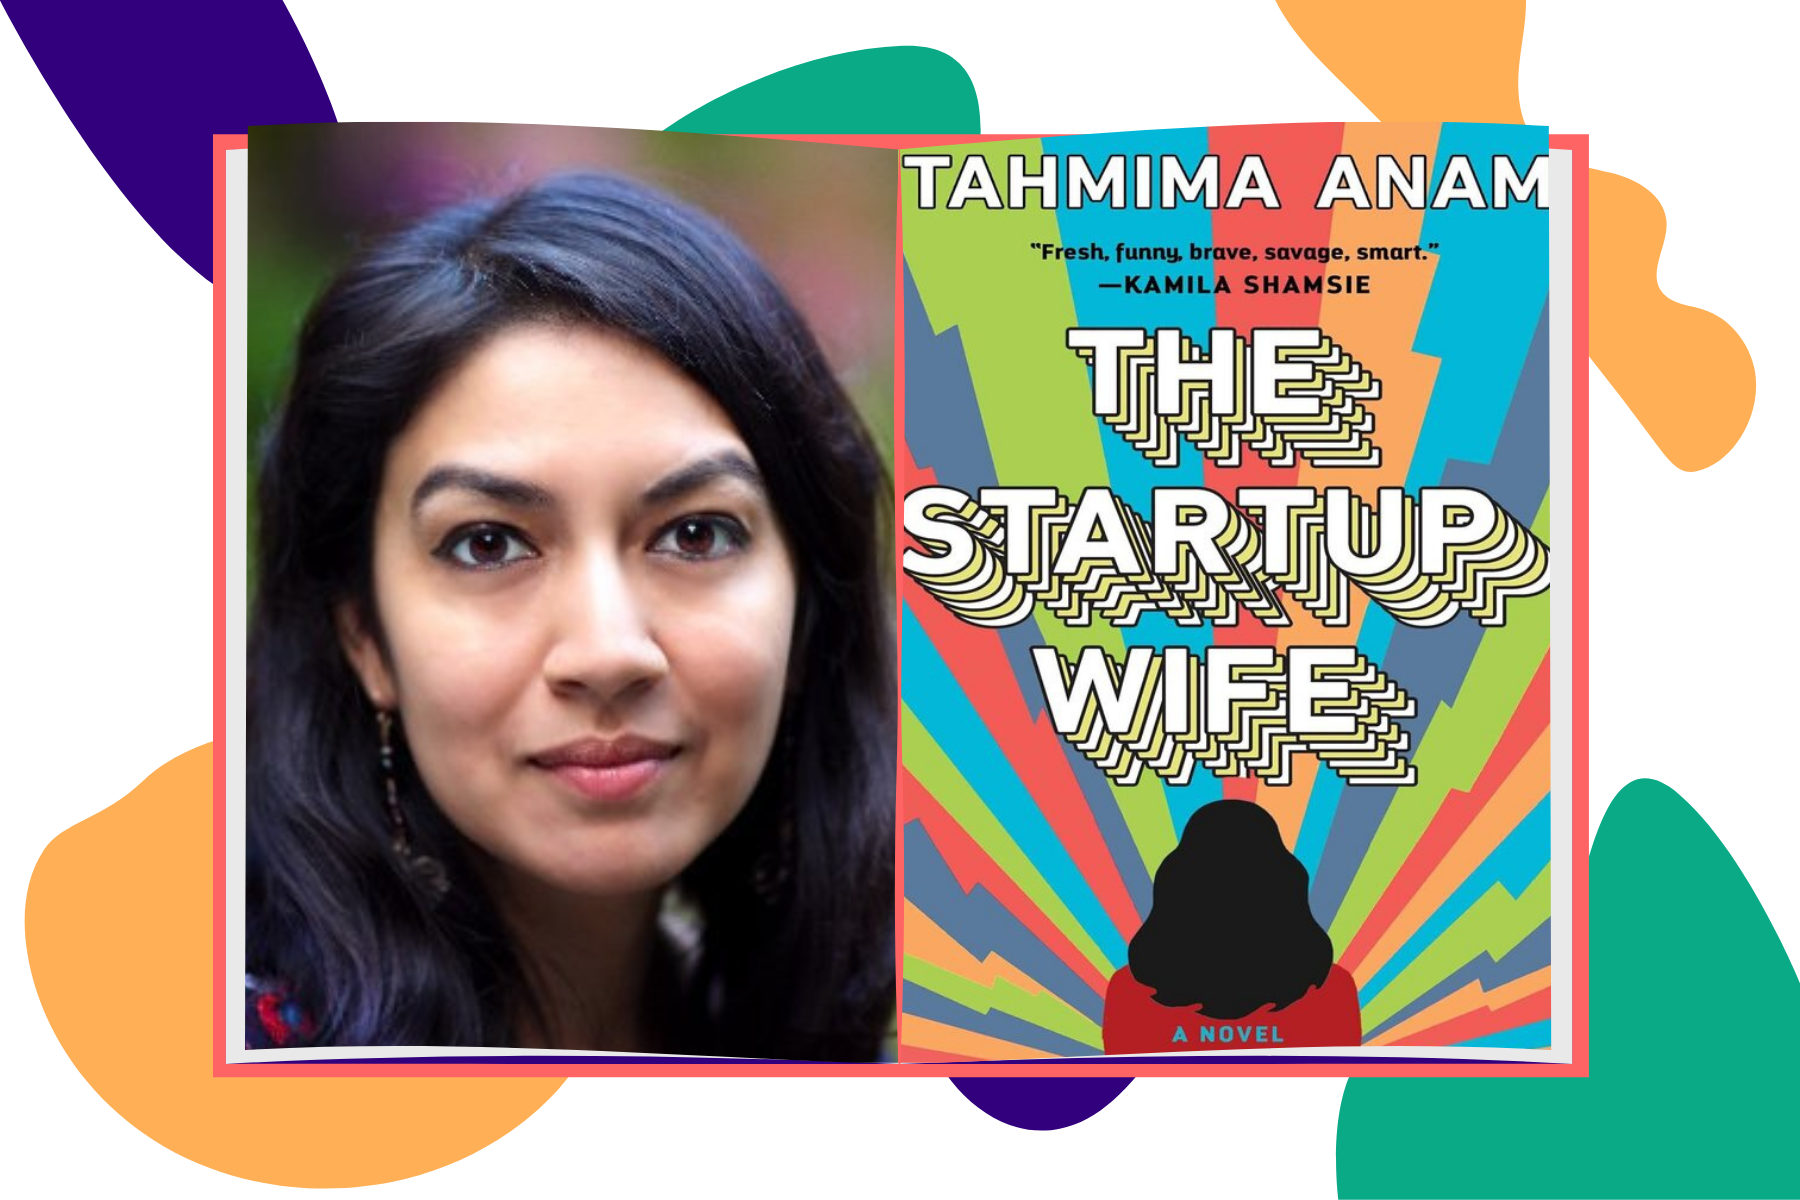 'Startup Wife' by Tahmima Anam